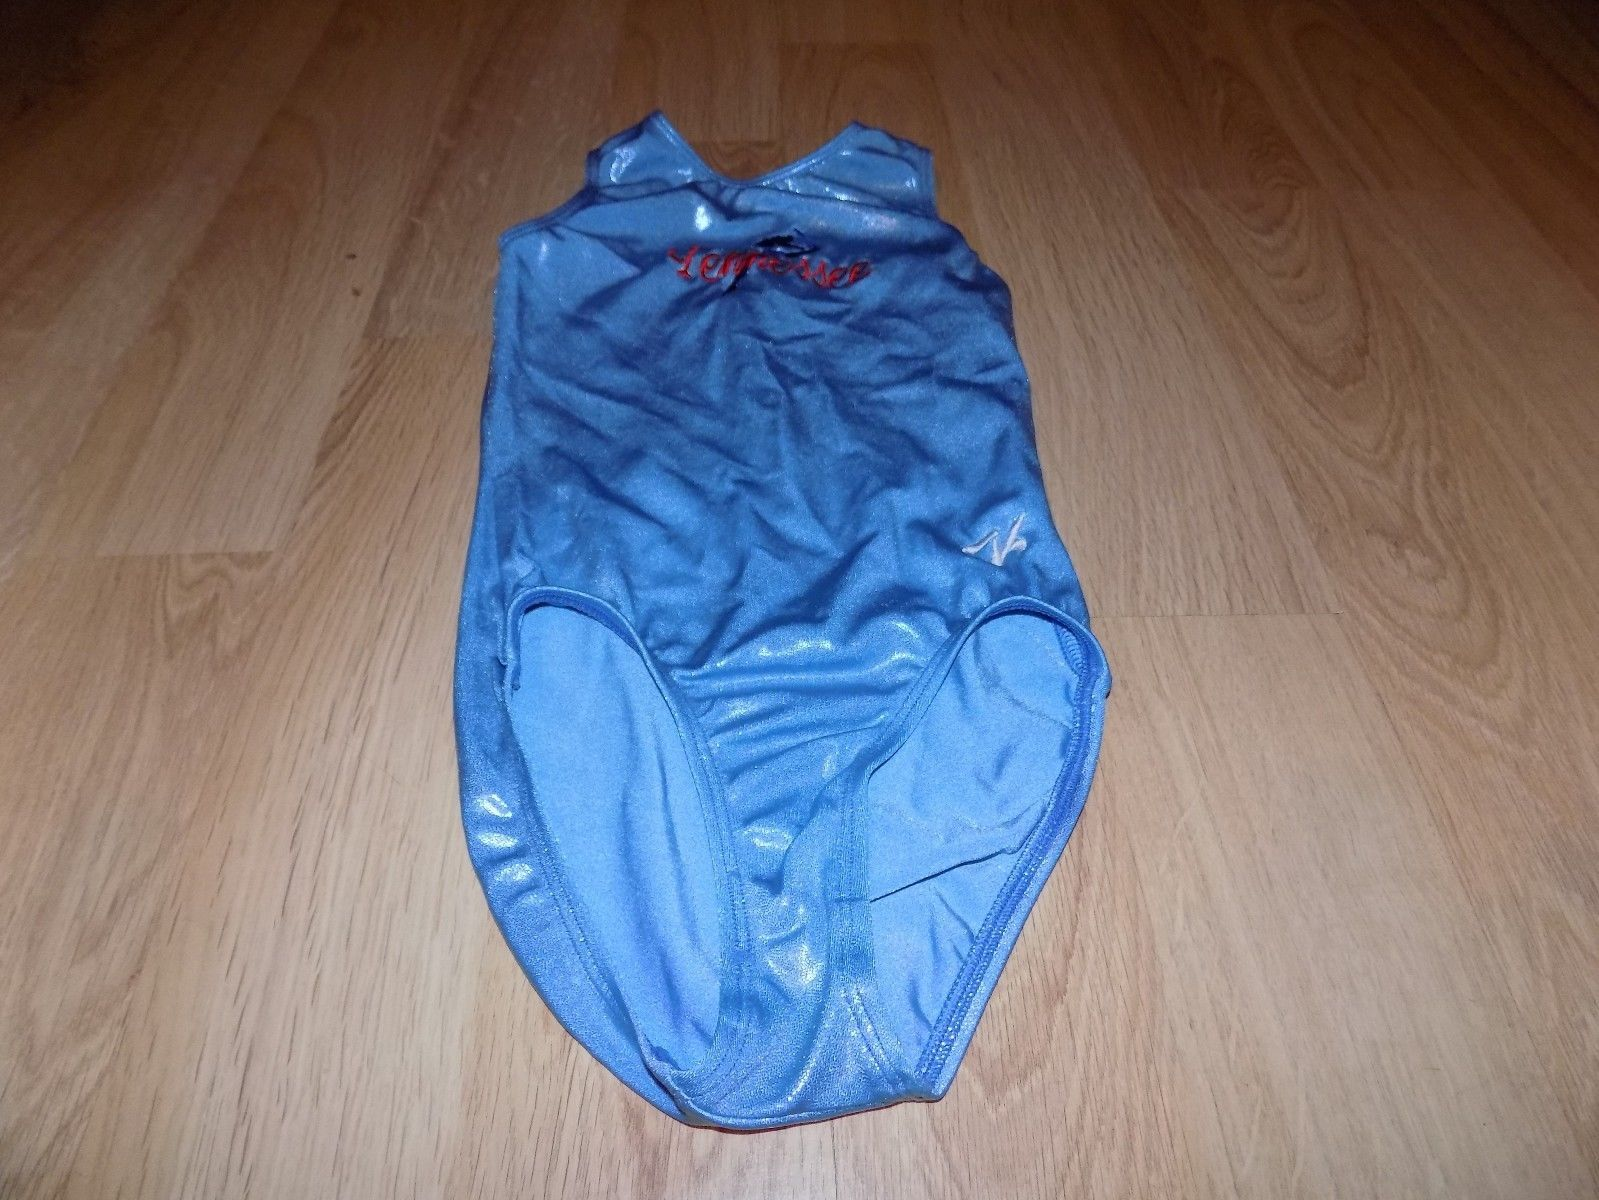 "Primary image for Size Medium ? 21"" GK Elite Light Blue Foil Gymnastics Leotard TENNESSEE Gymnast"